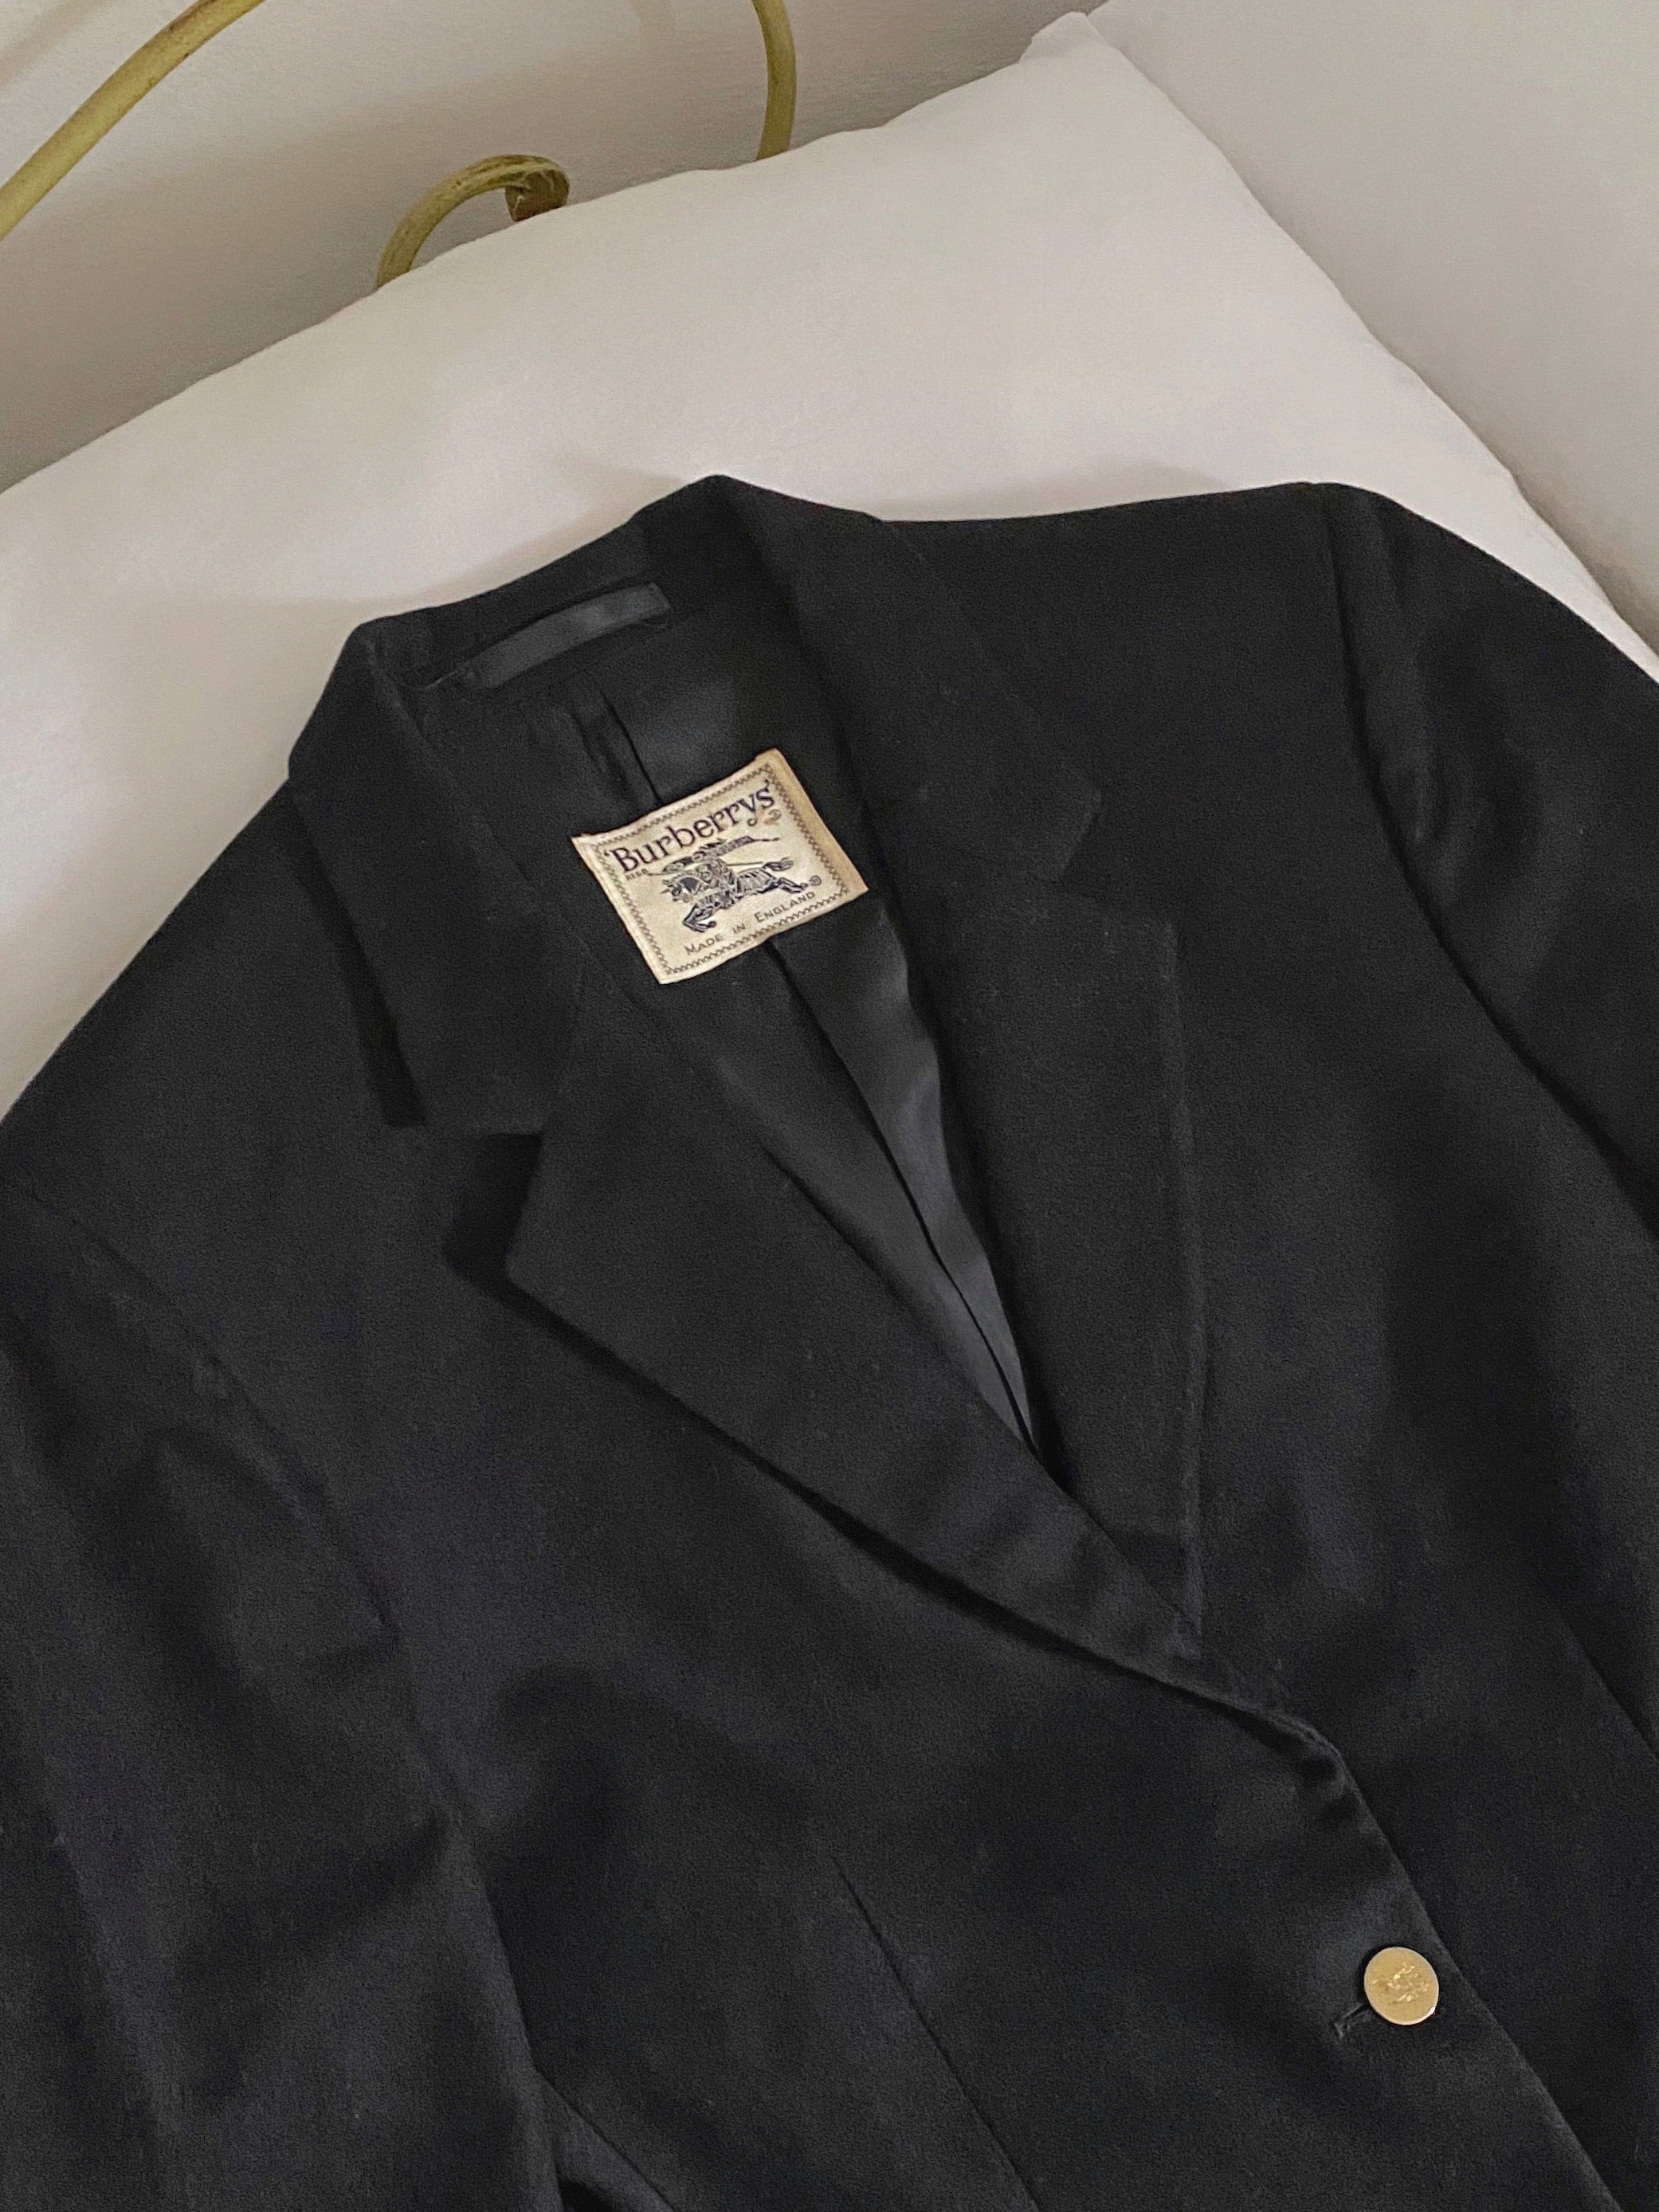 Vintage Burberry pure wool black blazer